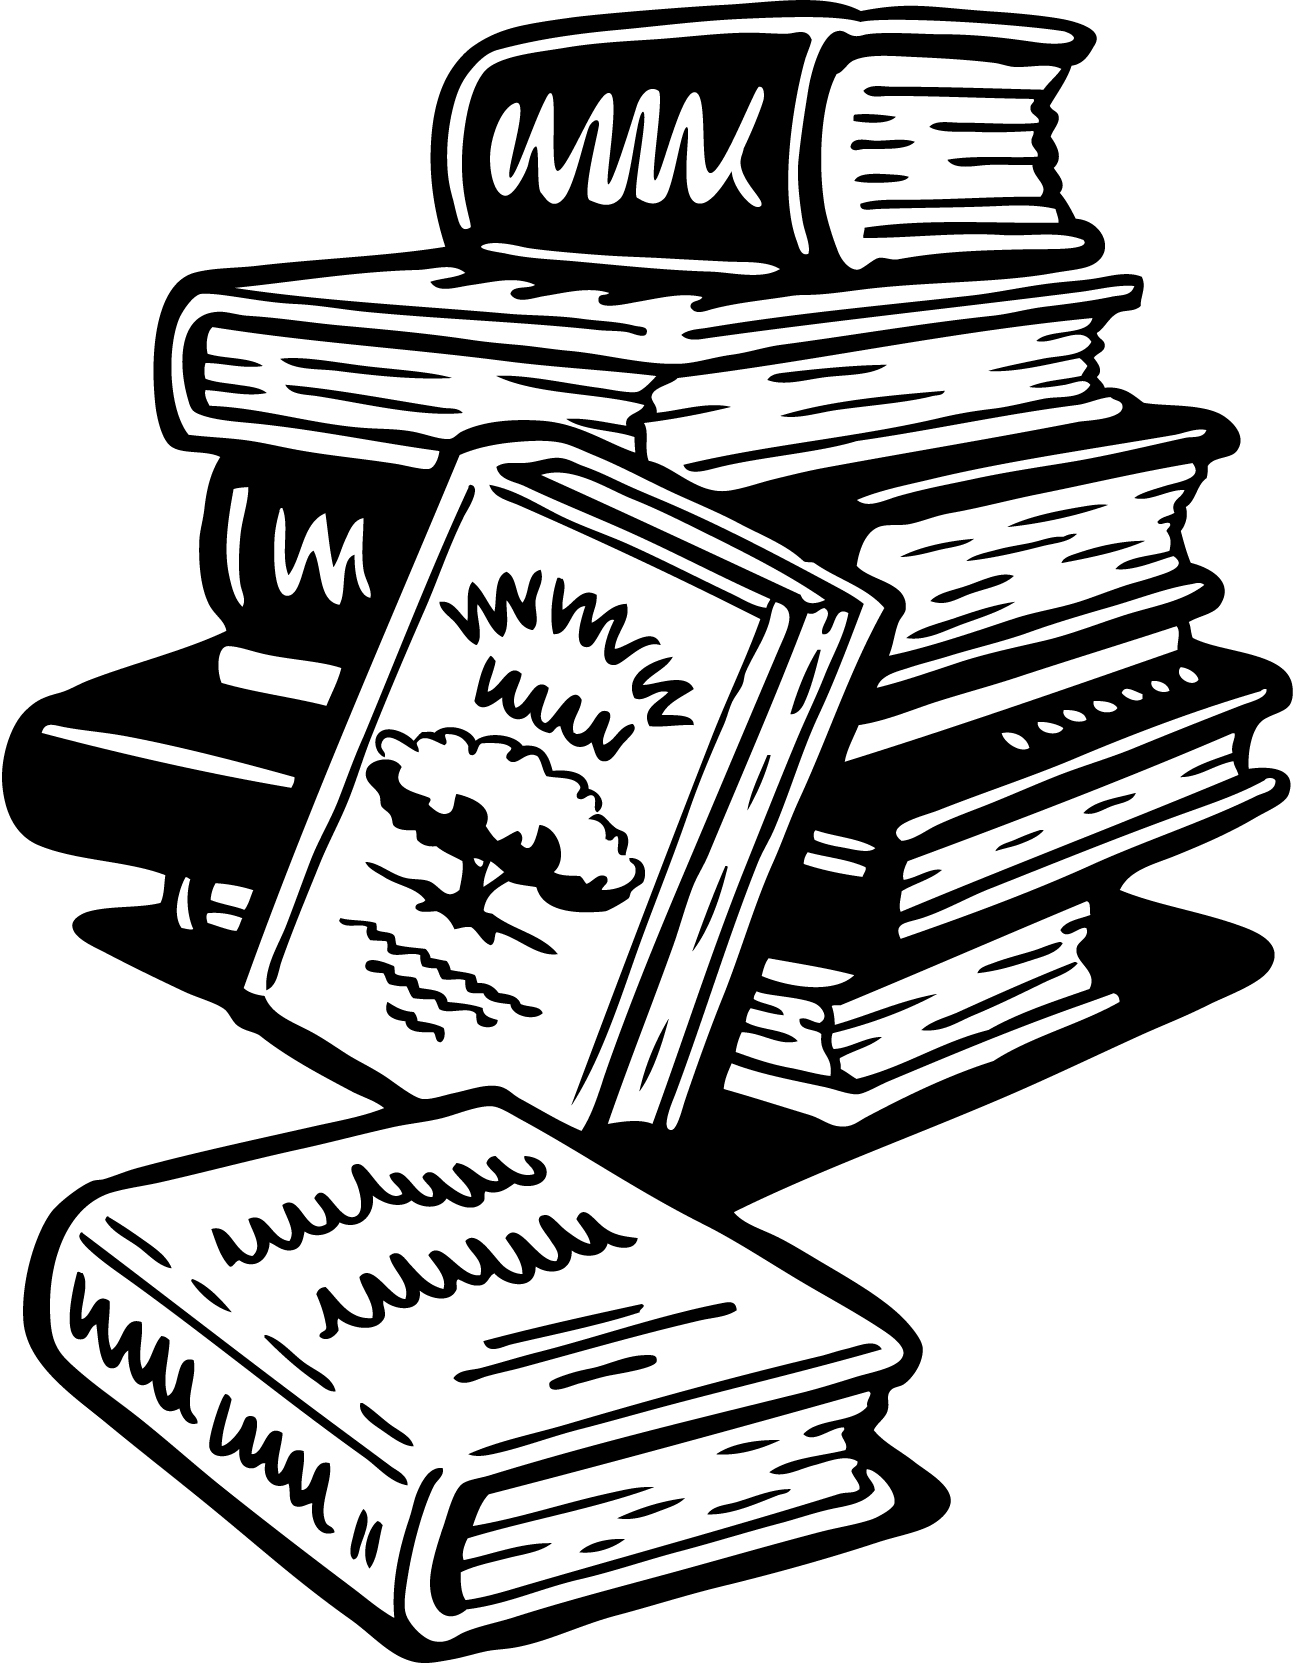 An updated grim postmortem. Bibliography clipart black and white